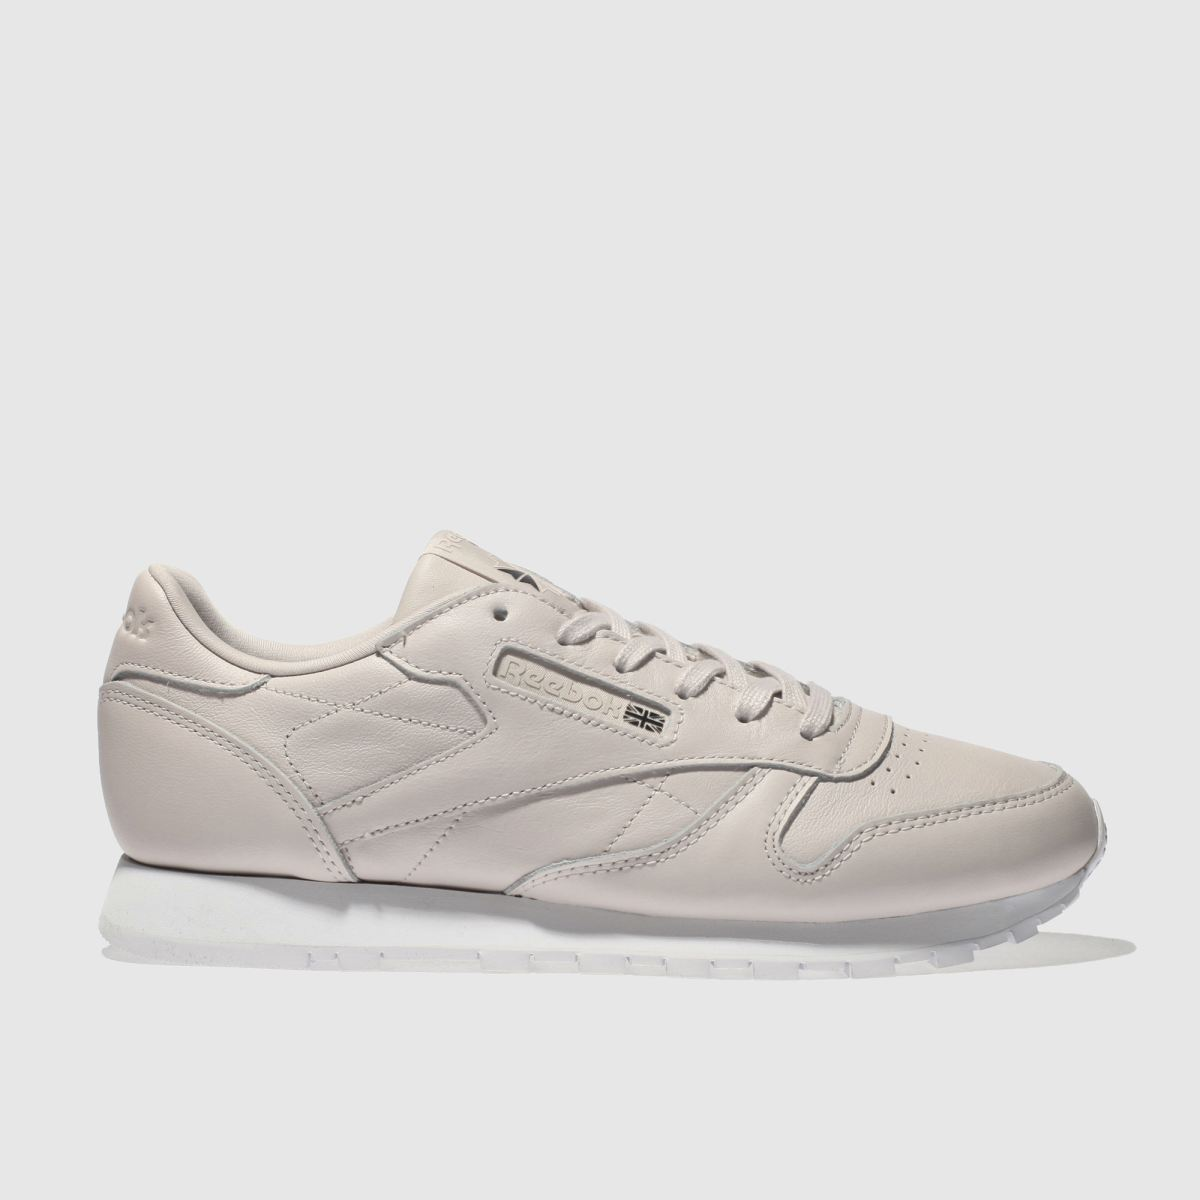 Reebok Pale Pink Classic Leather Trainers